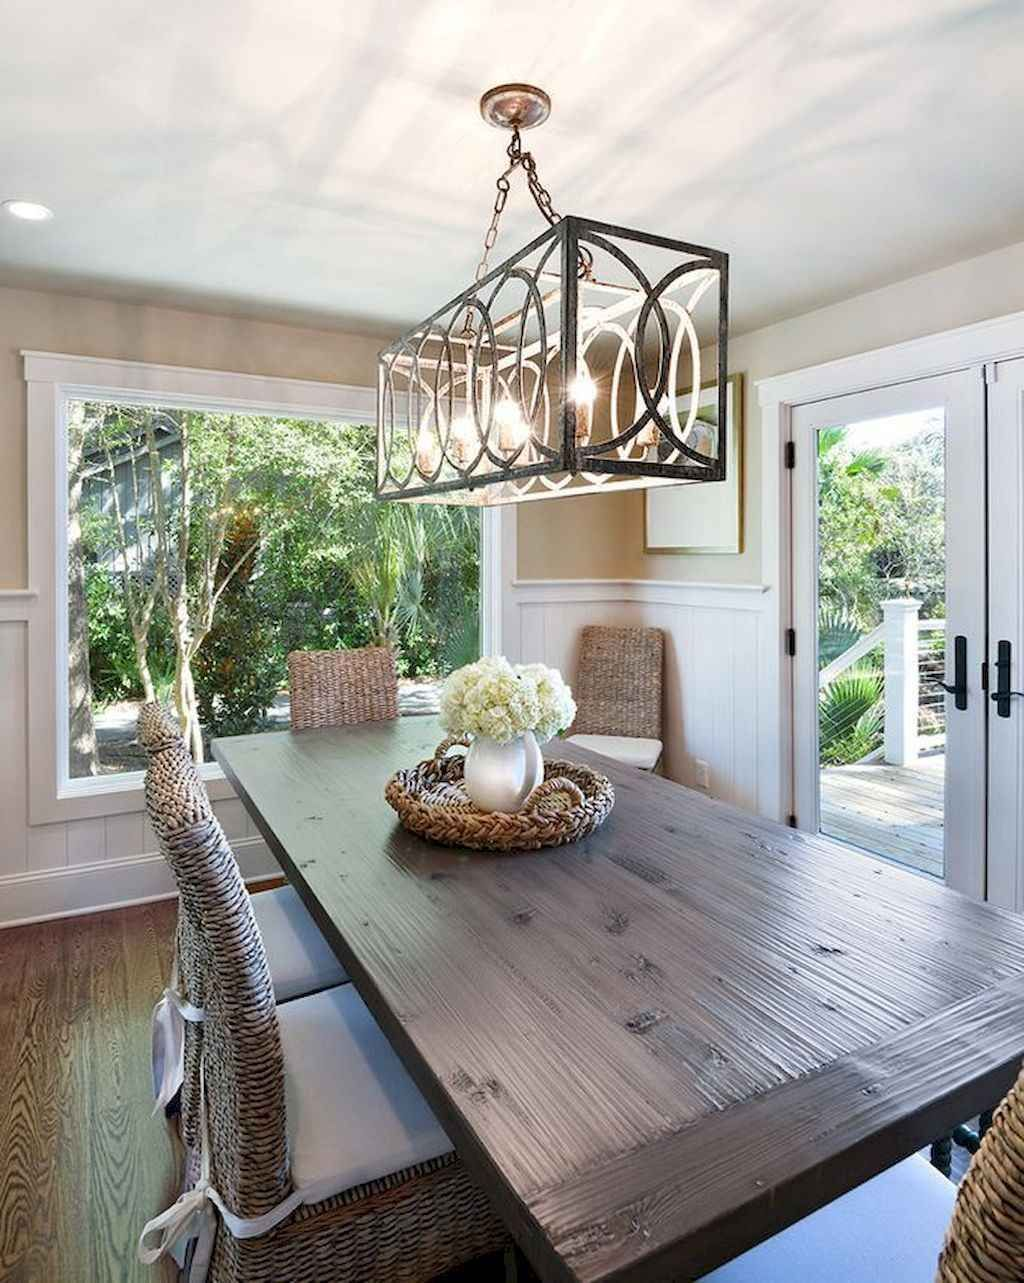 80 Lasting Farmhouse Dining Room Table Design Ideas Page 68 Of 84 Chaka Dec Dining Room Table Light Farmhouse Dining Room Table Dining Room Light Fixtures